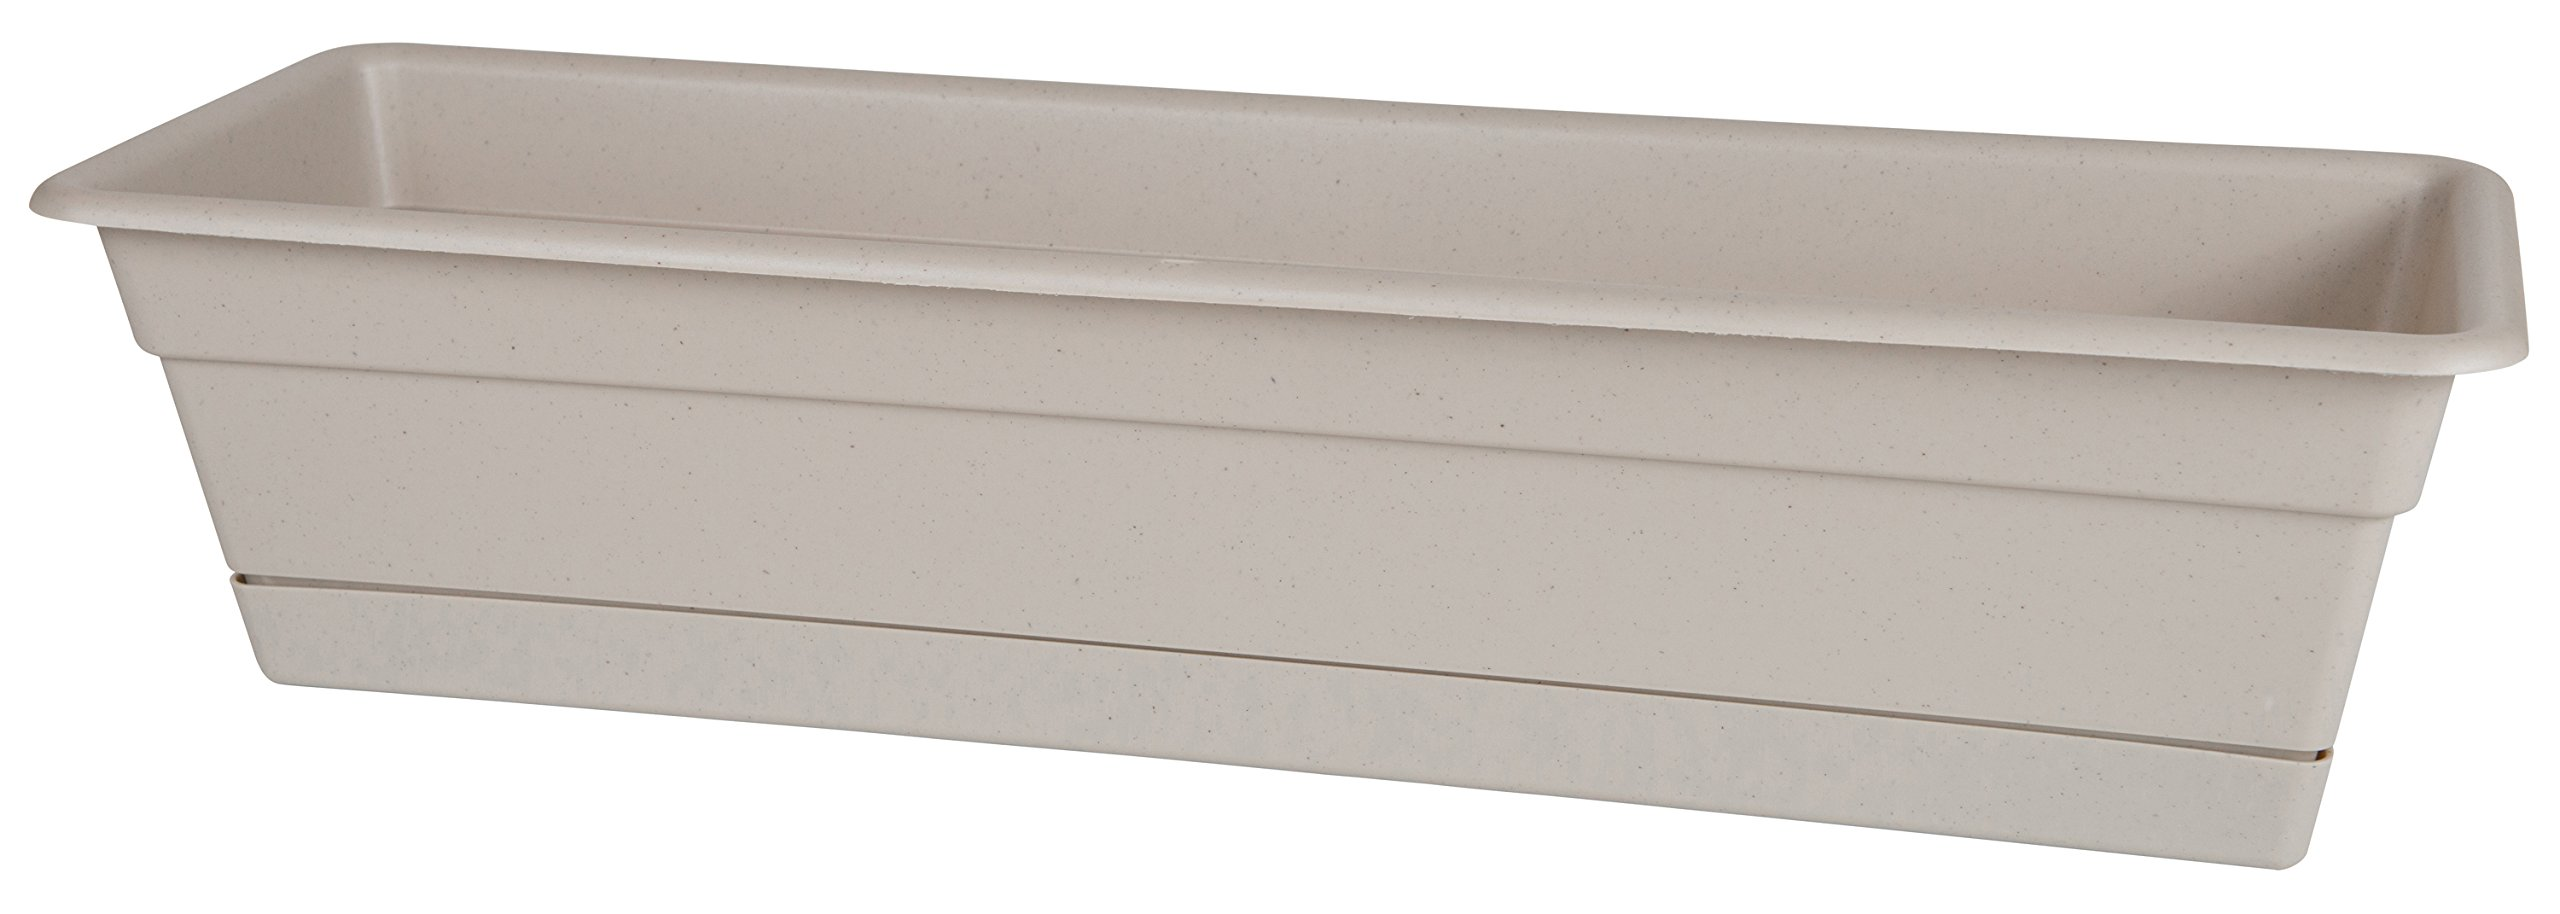 Bloem DCBT30-35 Dura Cotta Window Box Planter, 30'', Taupe